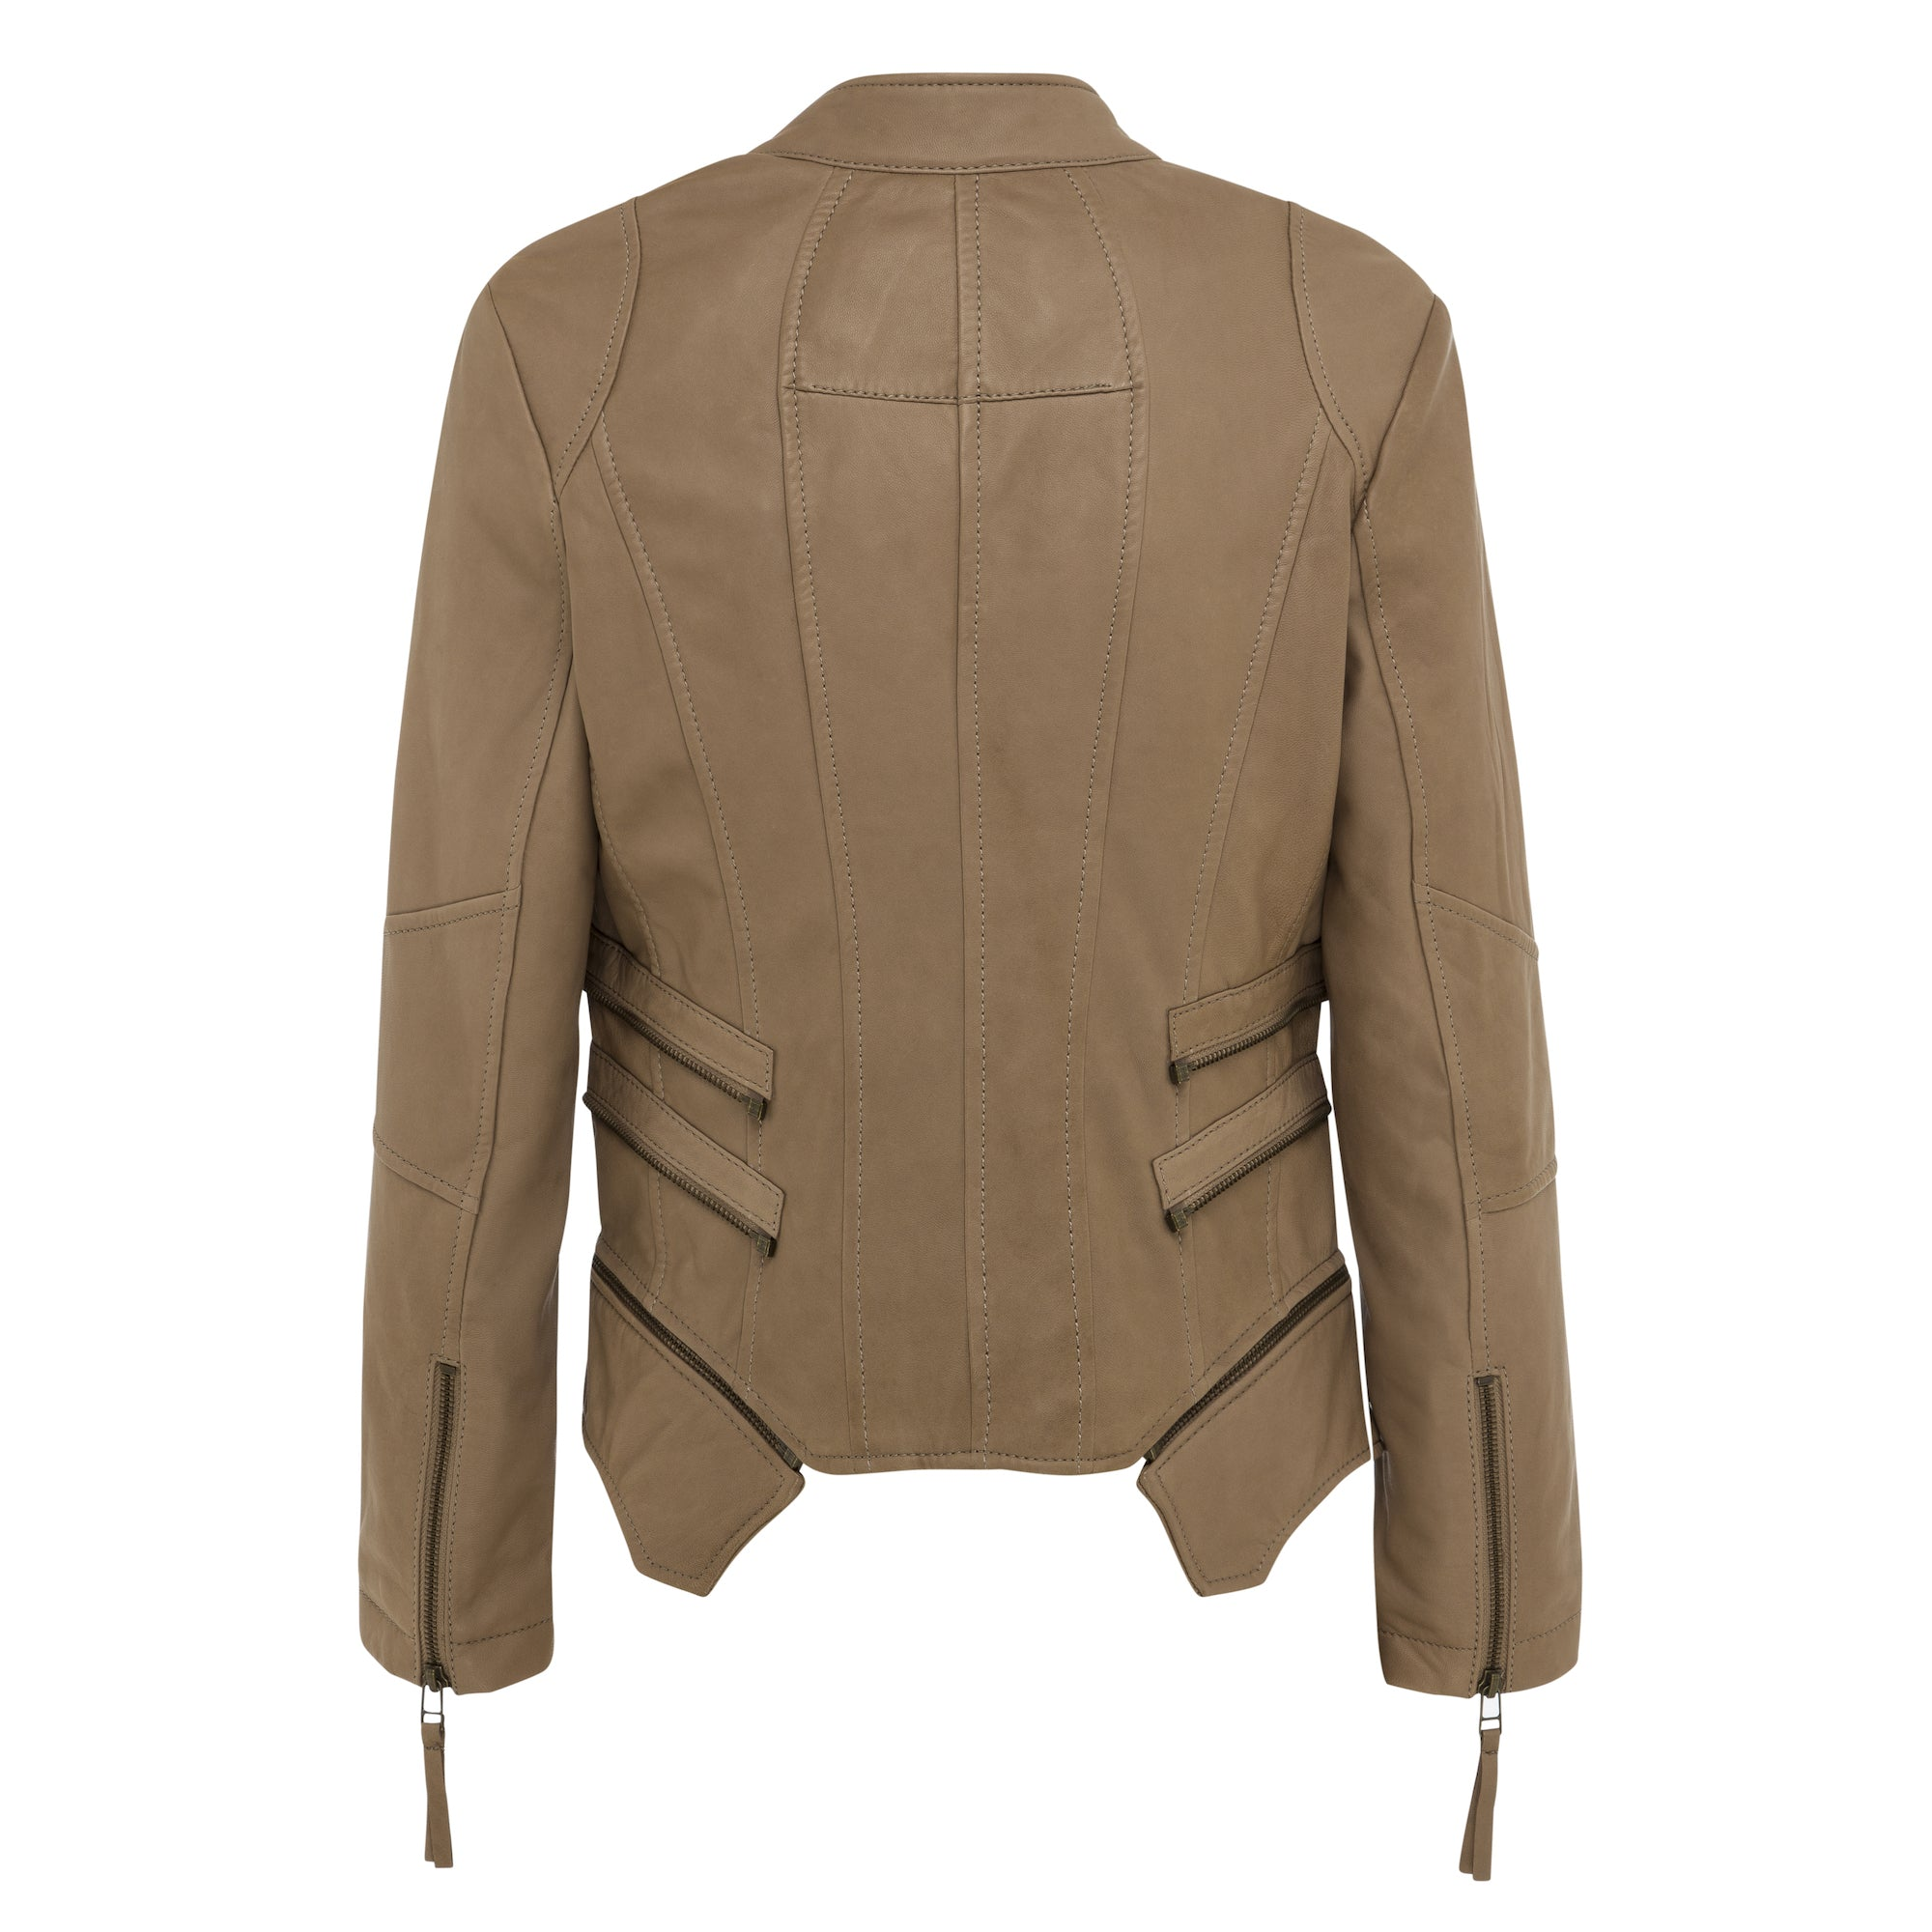 Mya leather jacket (latte colour)